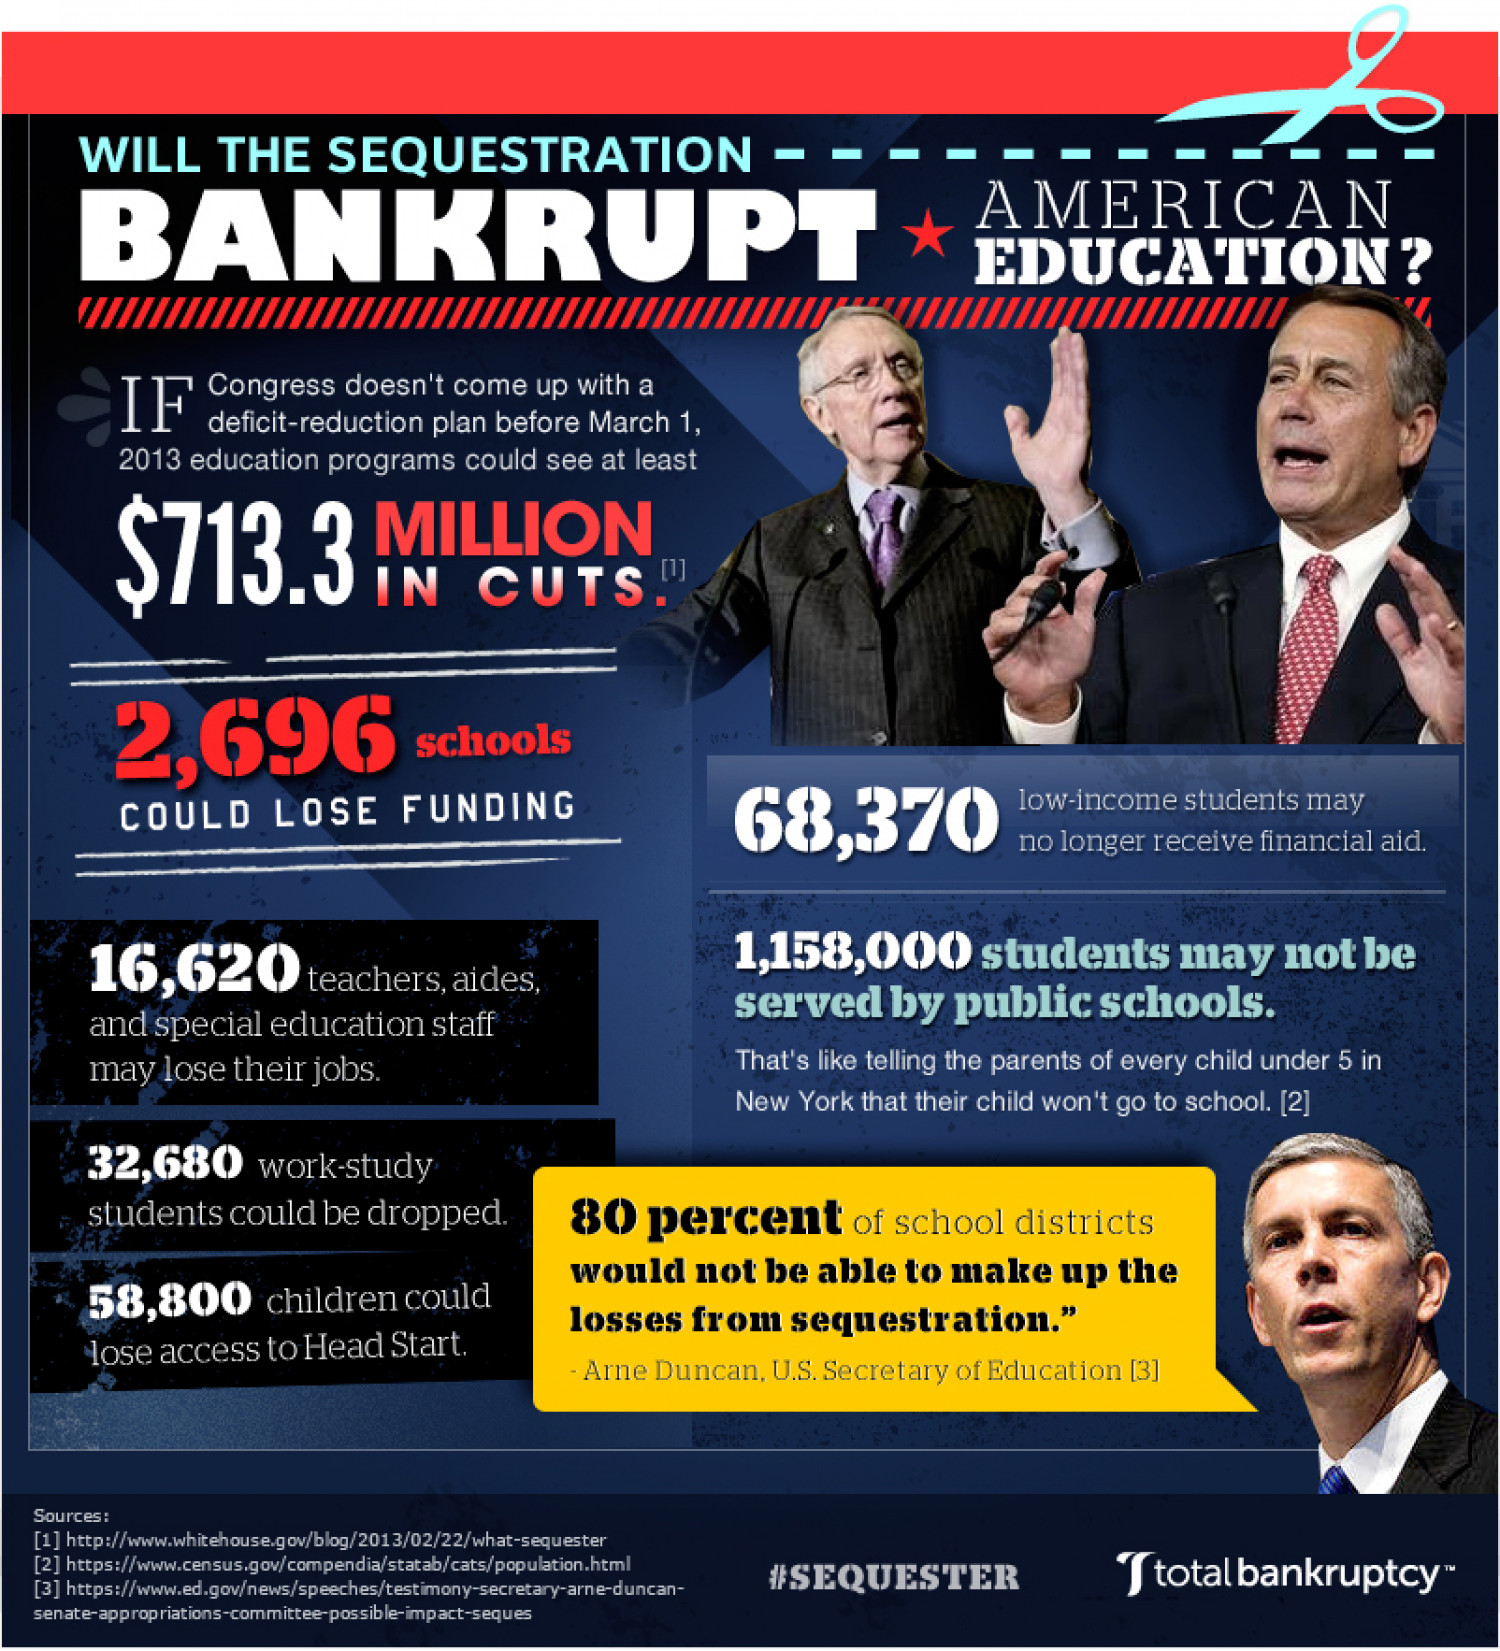 Will Sequestration Bankrupt American Education? Infographic